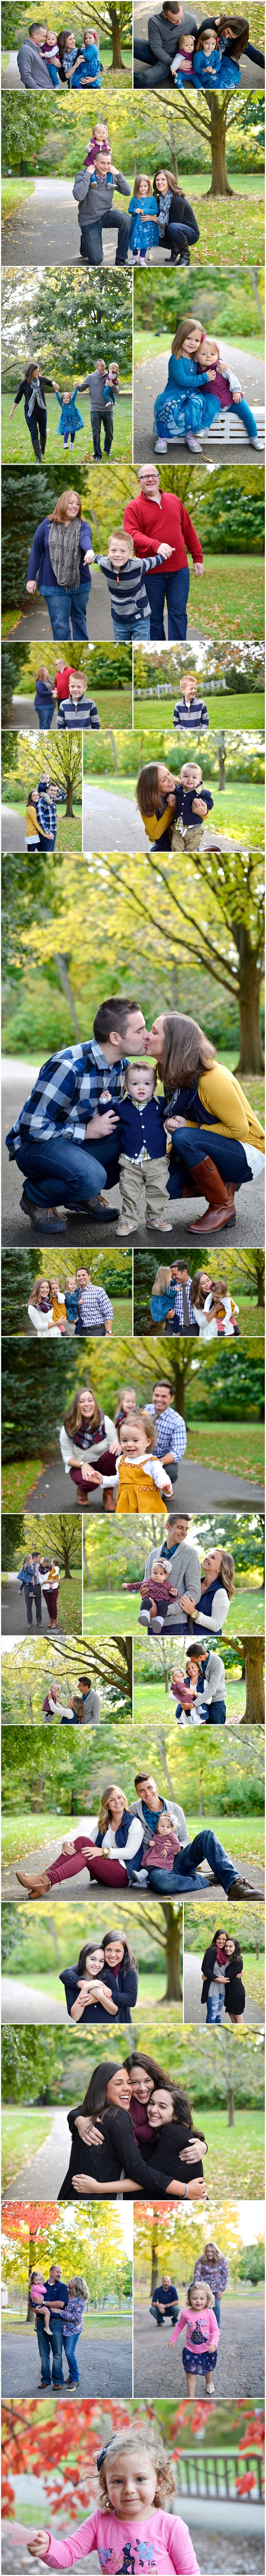 Fall Mini Session Columbus Ohio